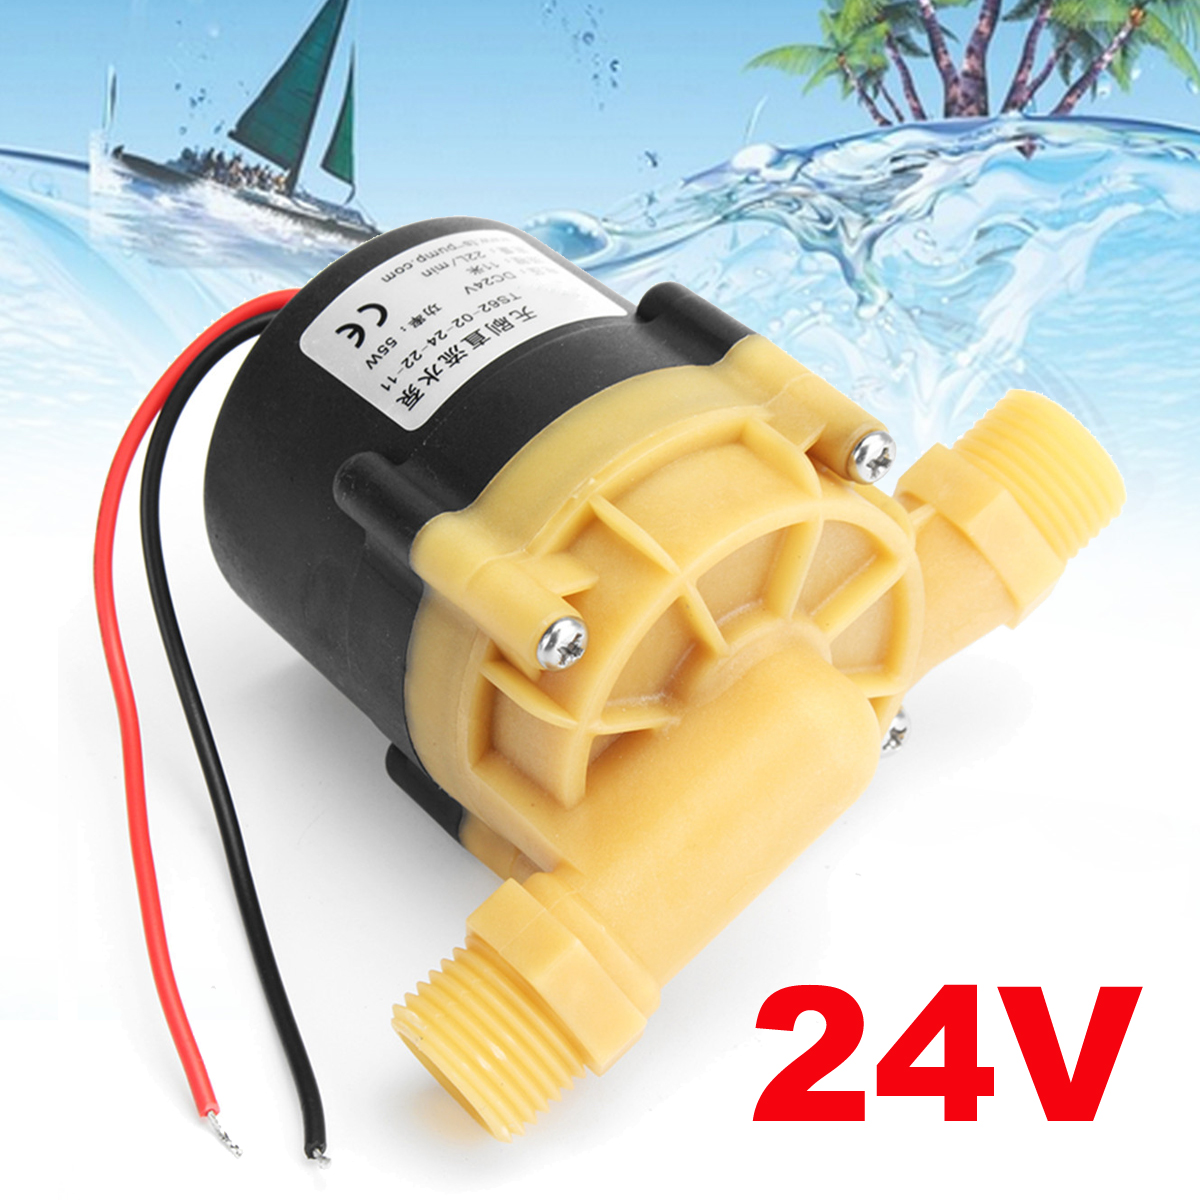 New Brushless DC 24V 55W 22L/min Water Pump Mini Booster Pump 1.5A 11m For Chiller Machine And LED Light Pump